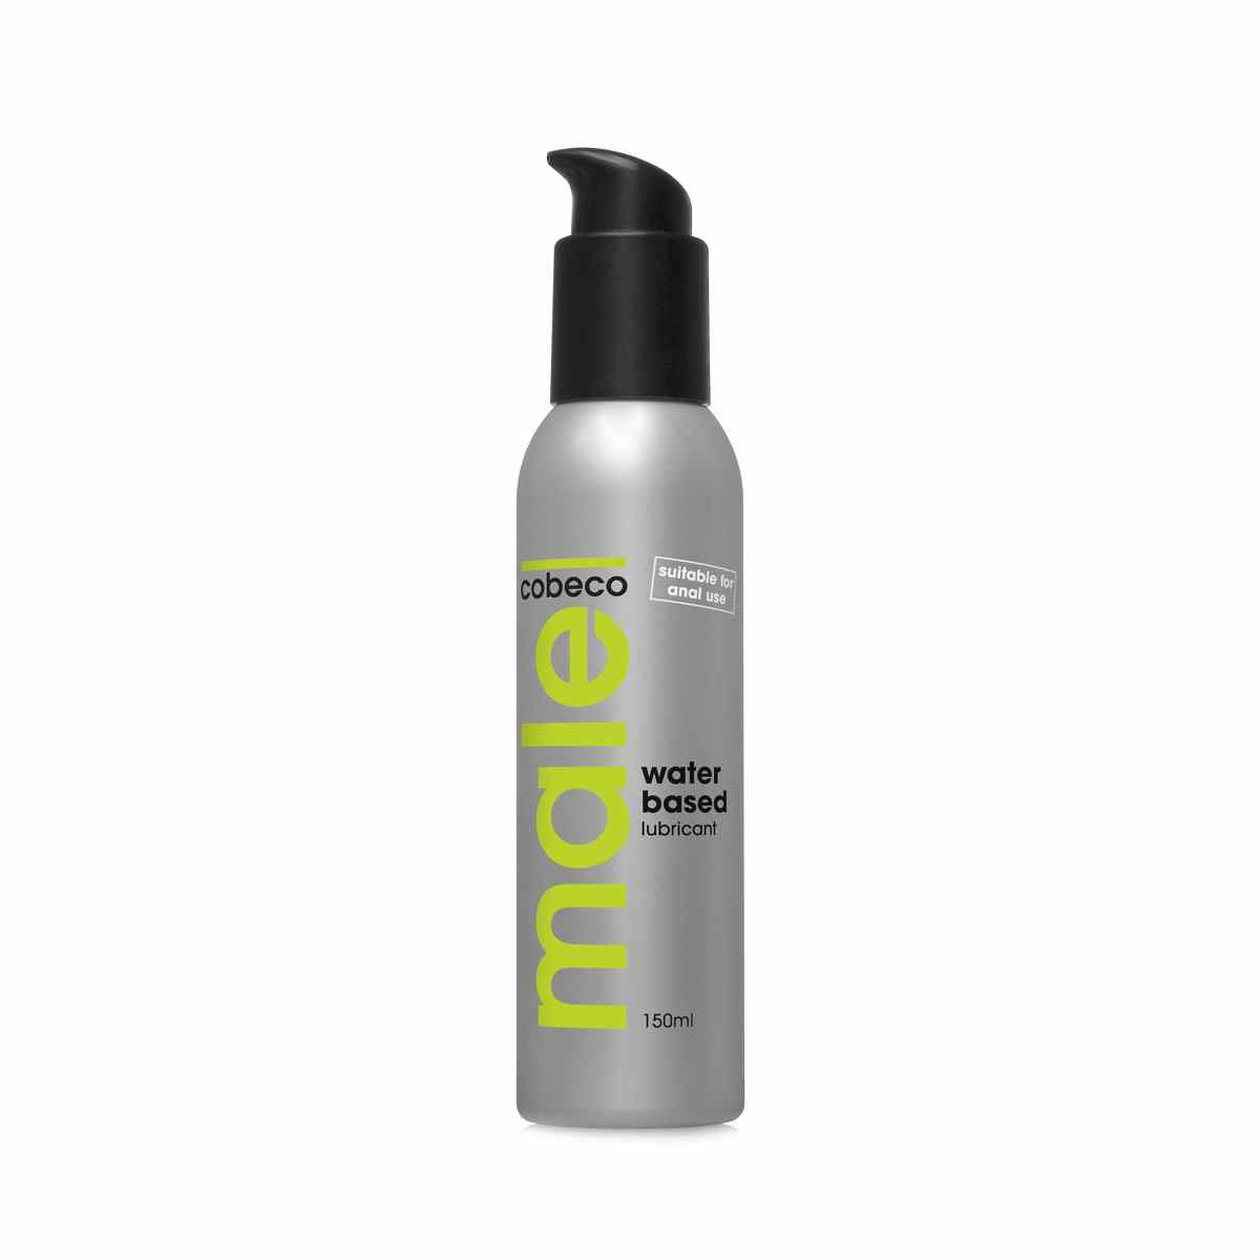 MALE Lubricant Water Based 150 ml